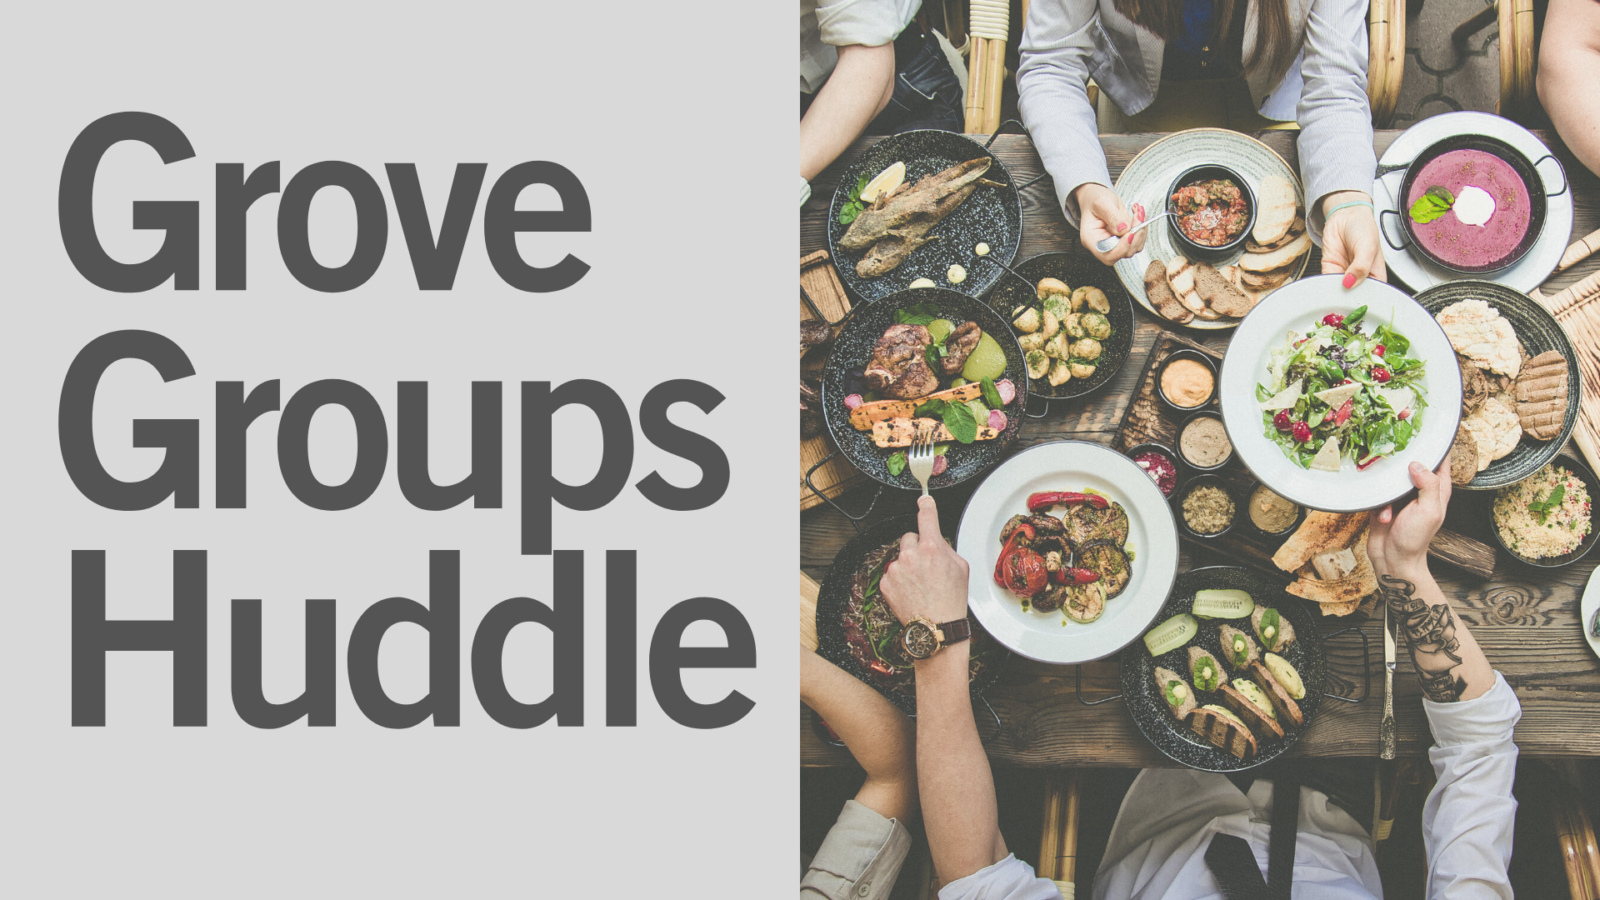 Grove Groups Huddle